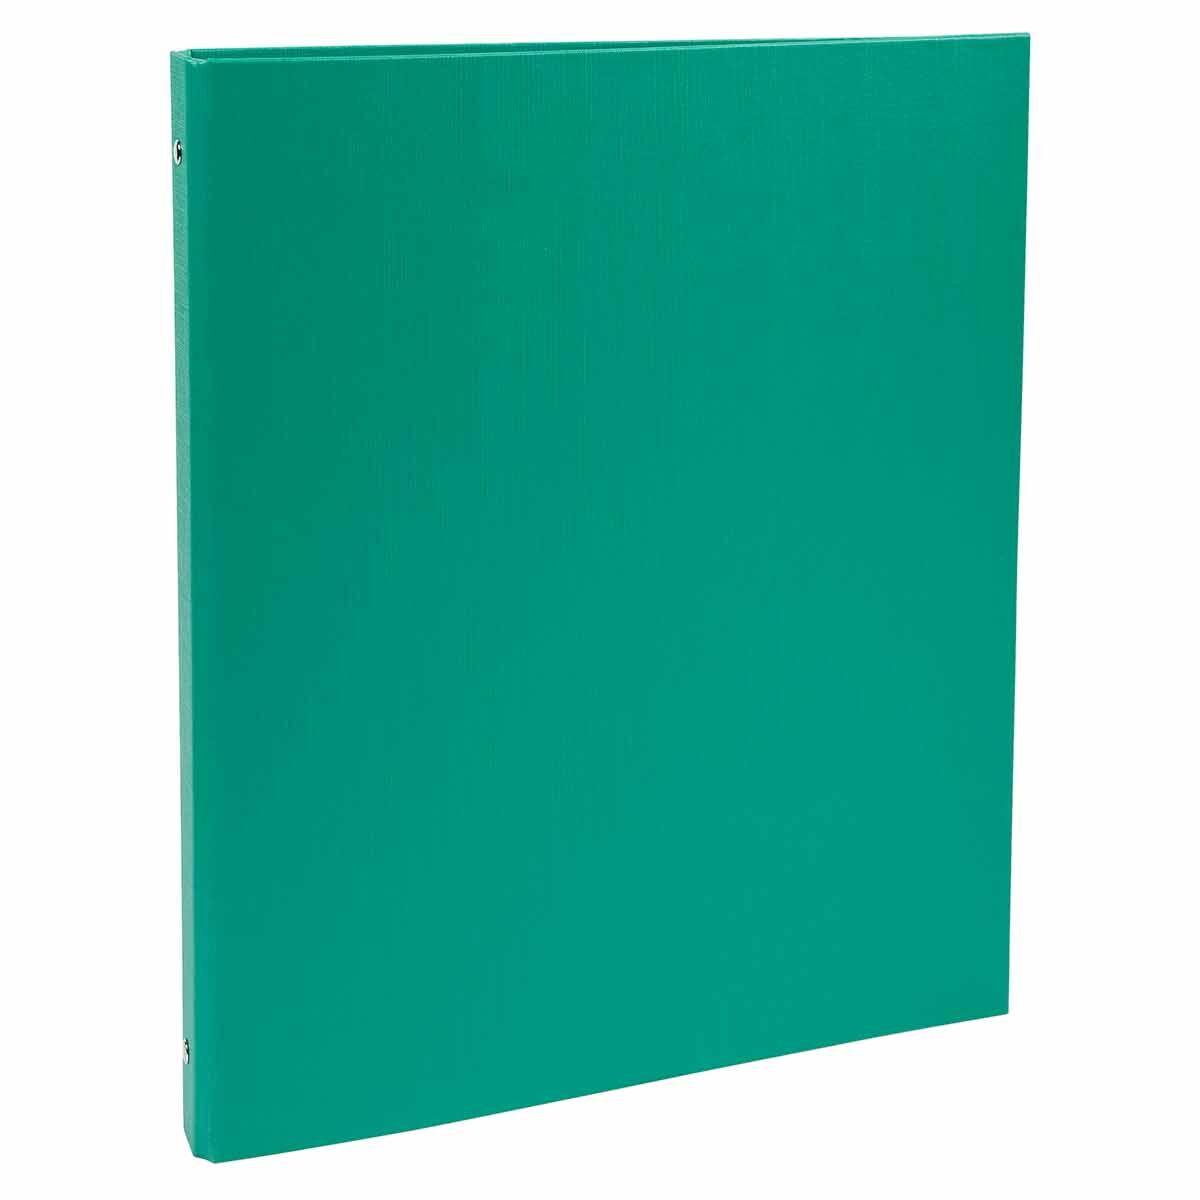 Exacompta Covered Card Ring Binder A4 4 Rings 15mm Pack of 20 Green